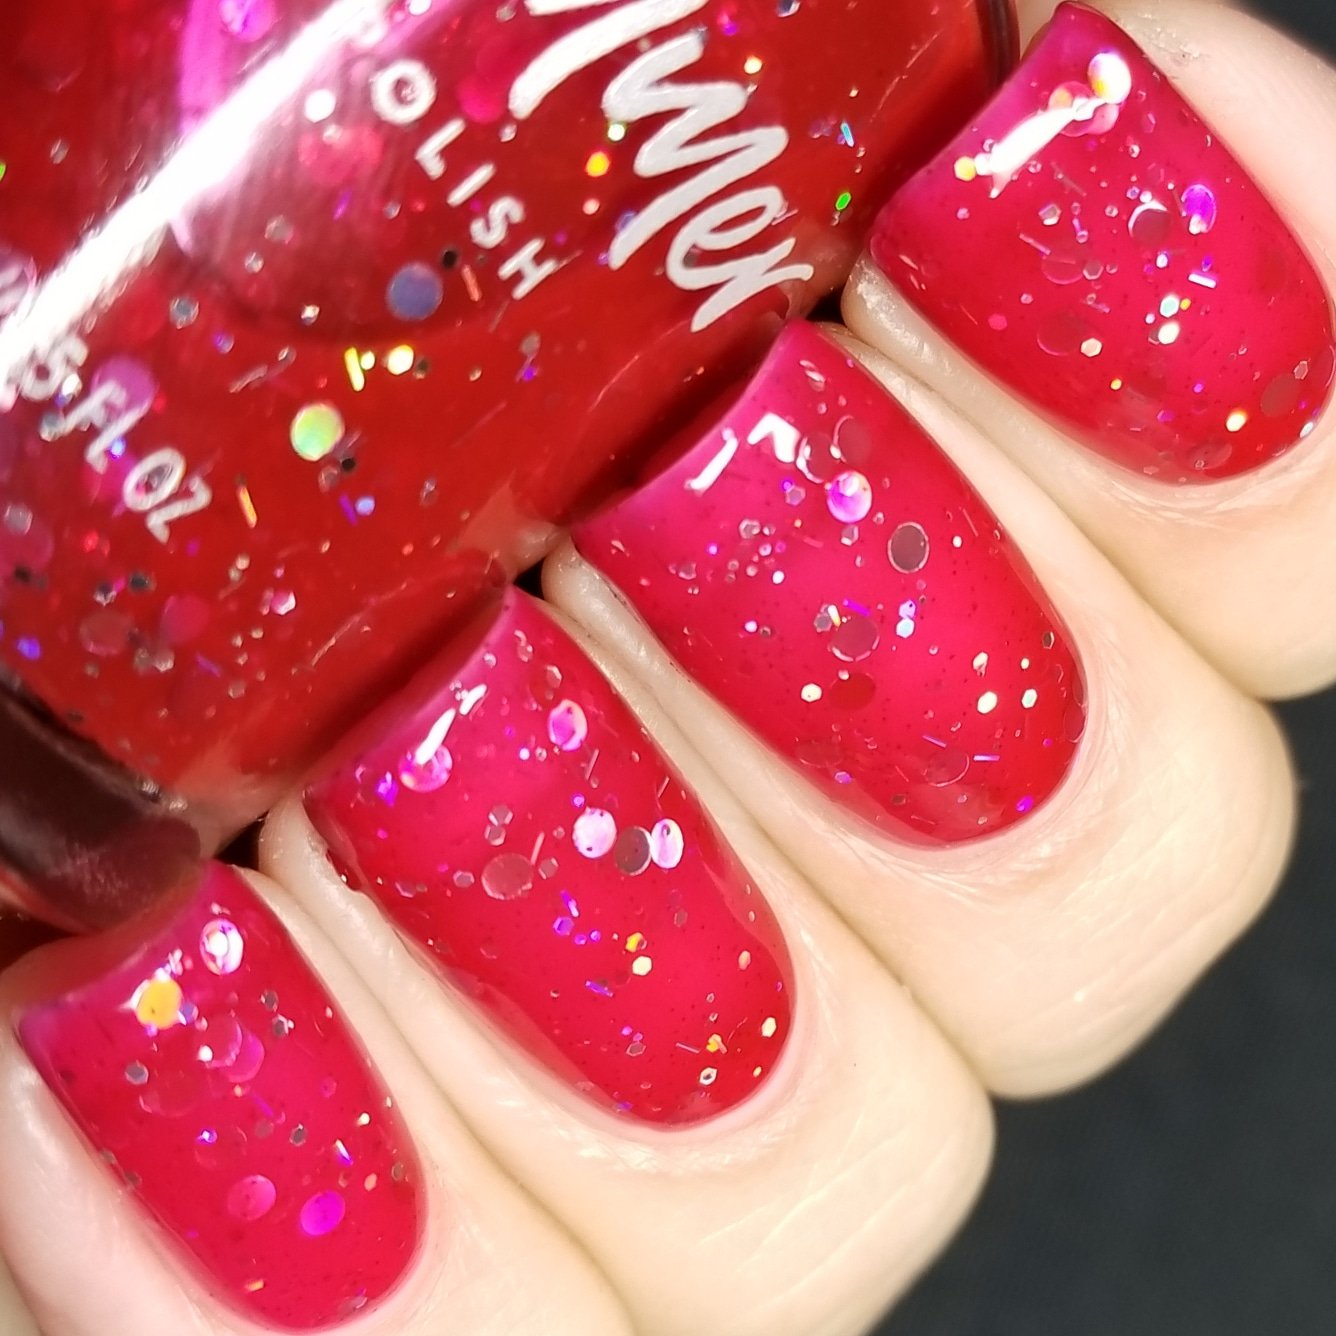 Amazon.com : Showgirl Black And Fuchsia Pink Glitter Nail